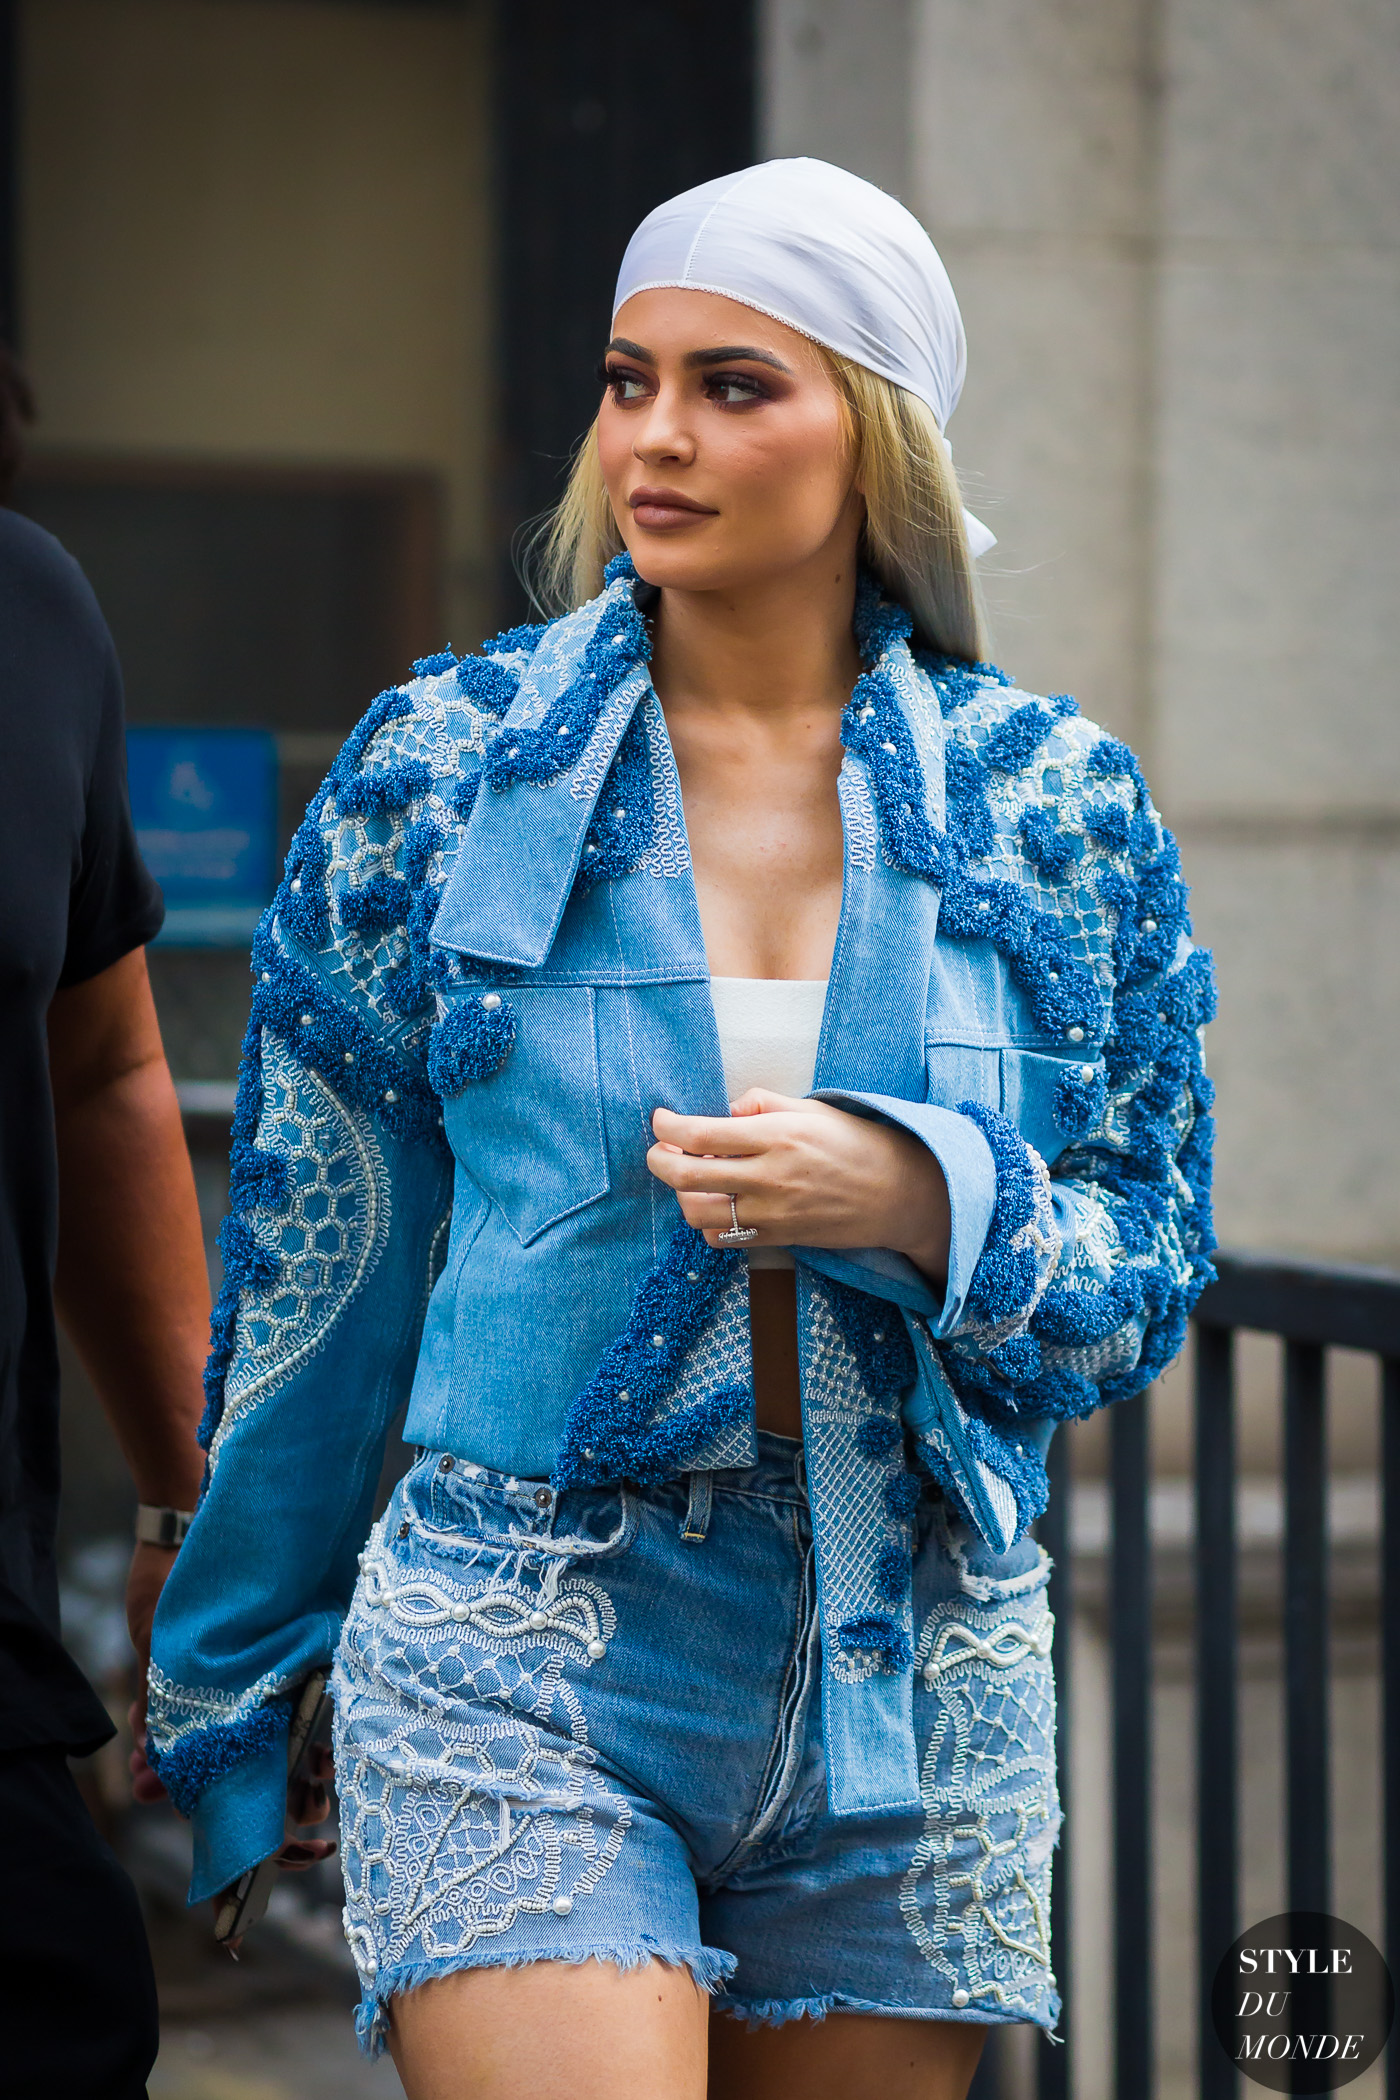 kylie-jenner-by-styledumonde-street-style-fashion-photography